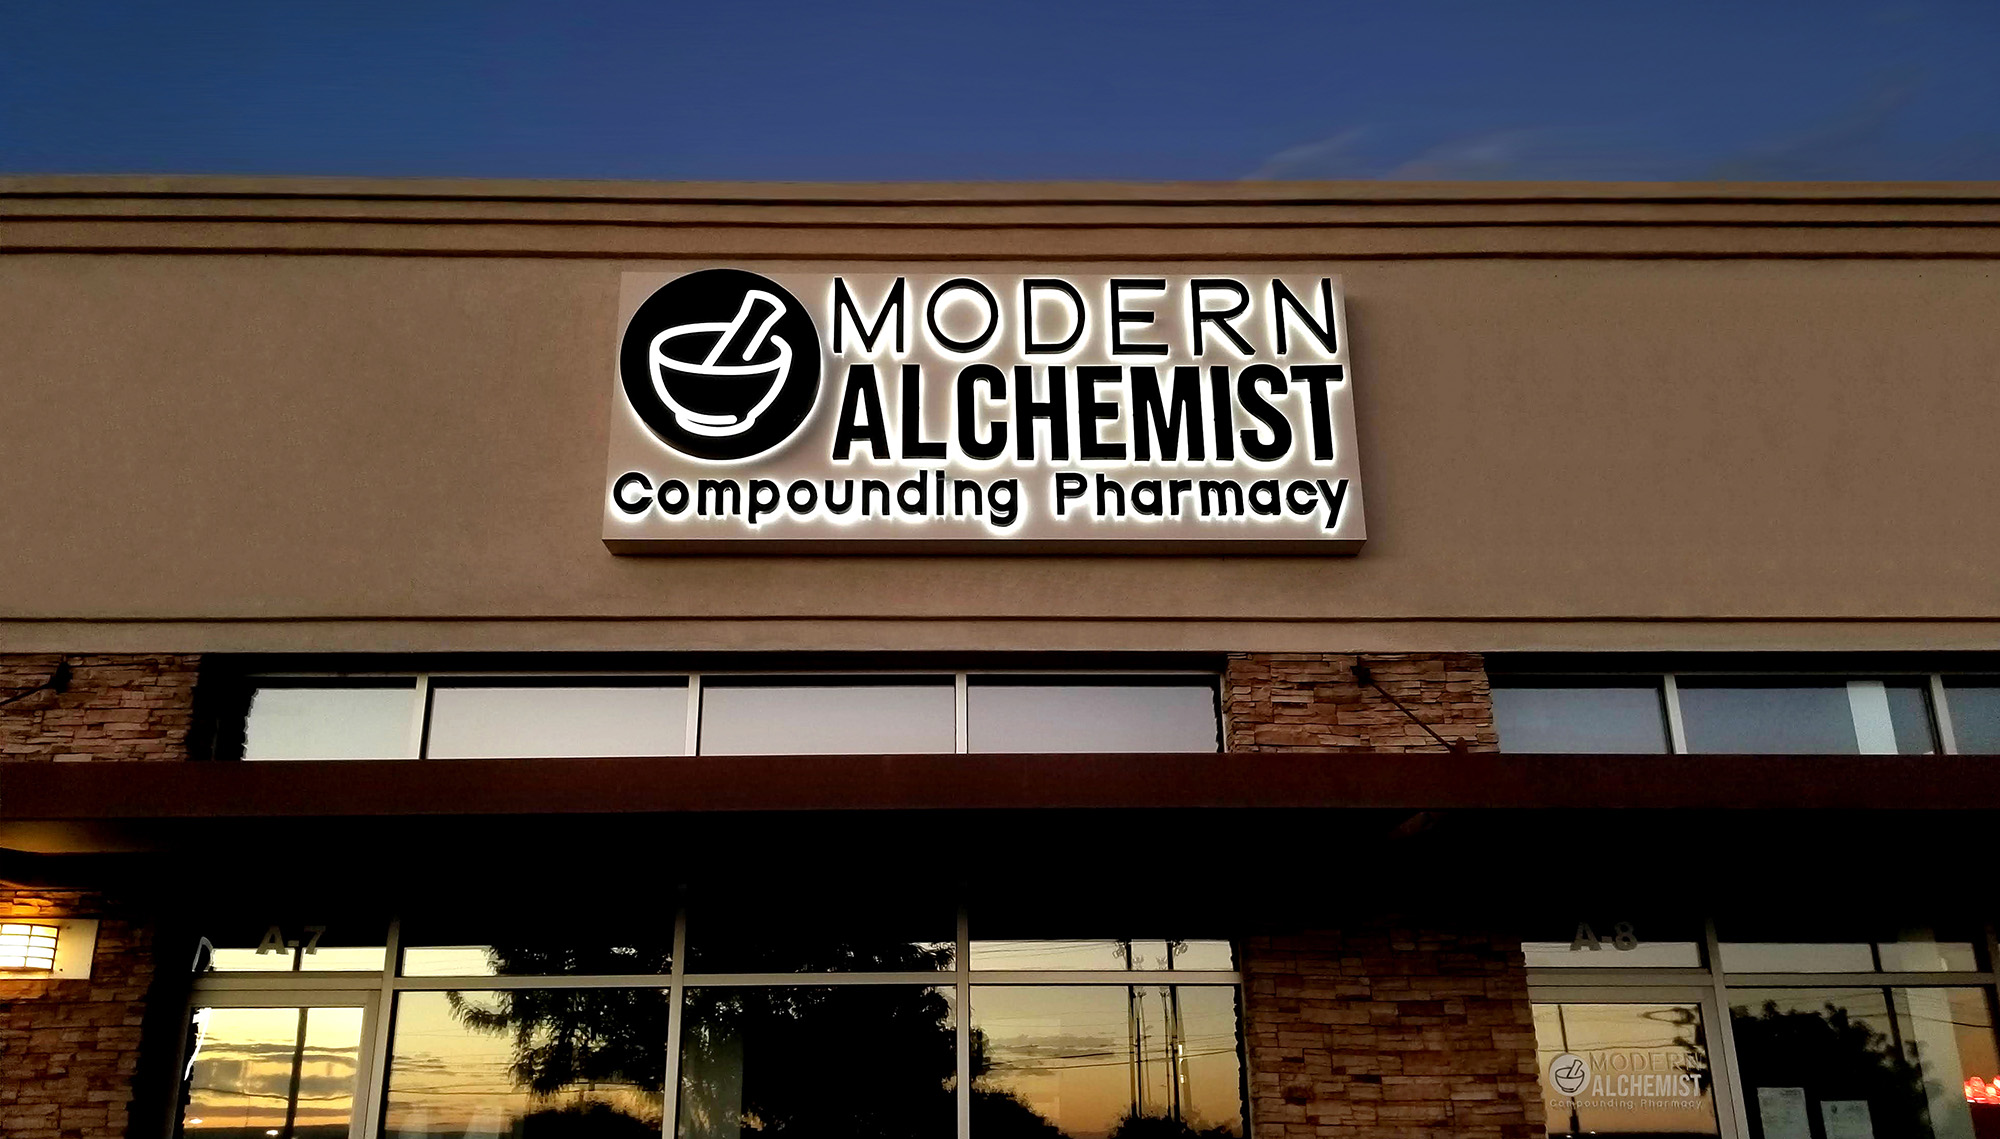 Modern Alchemist opens its first state-of-the-art Compounding Pharmacy in Albuquerque